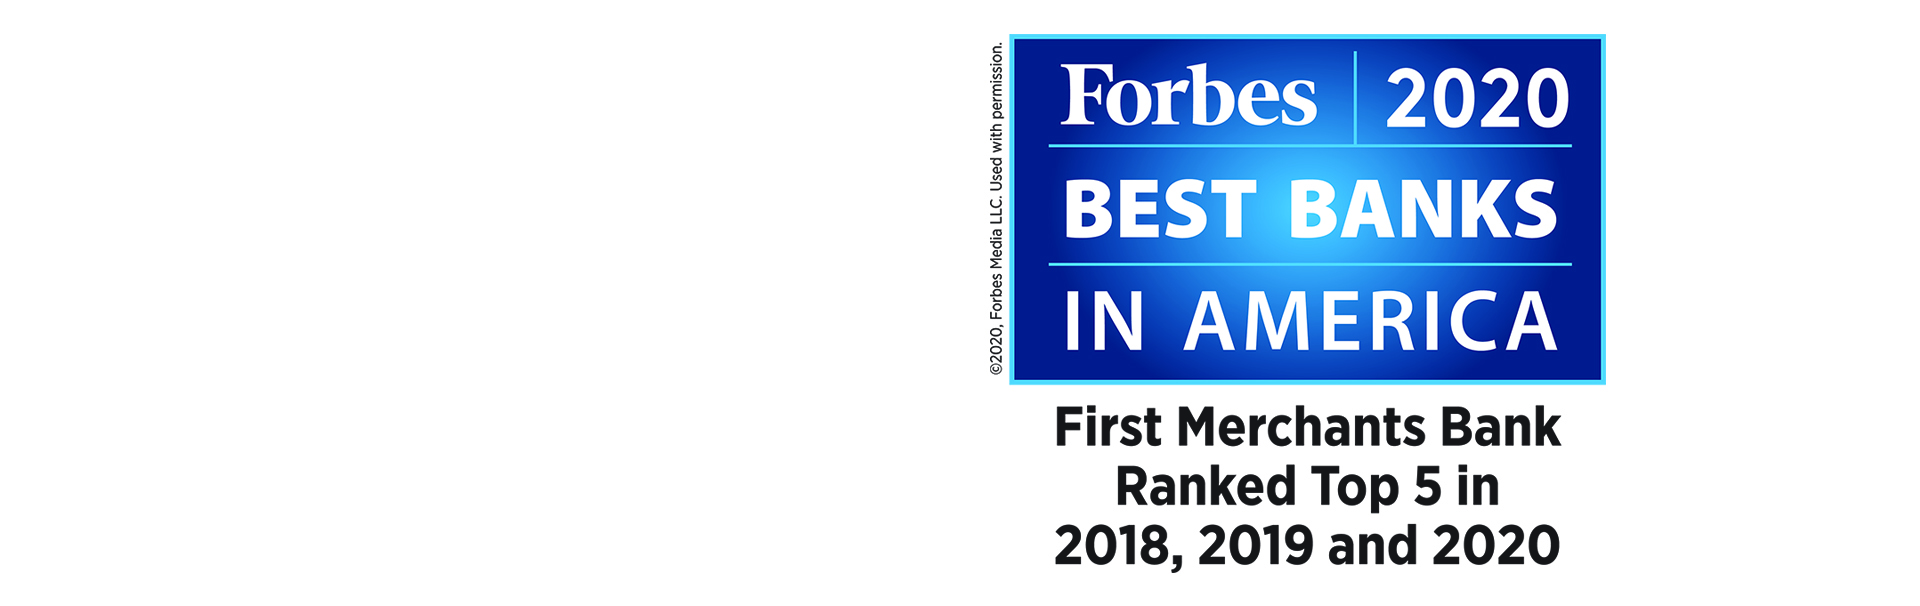 First Merchants Bank Forbes best bank in America 2020